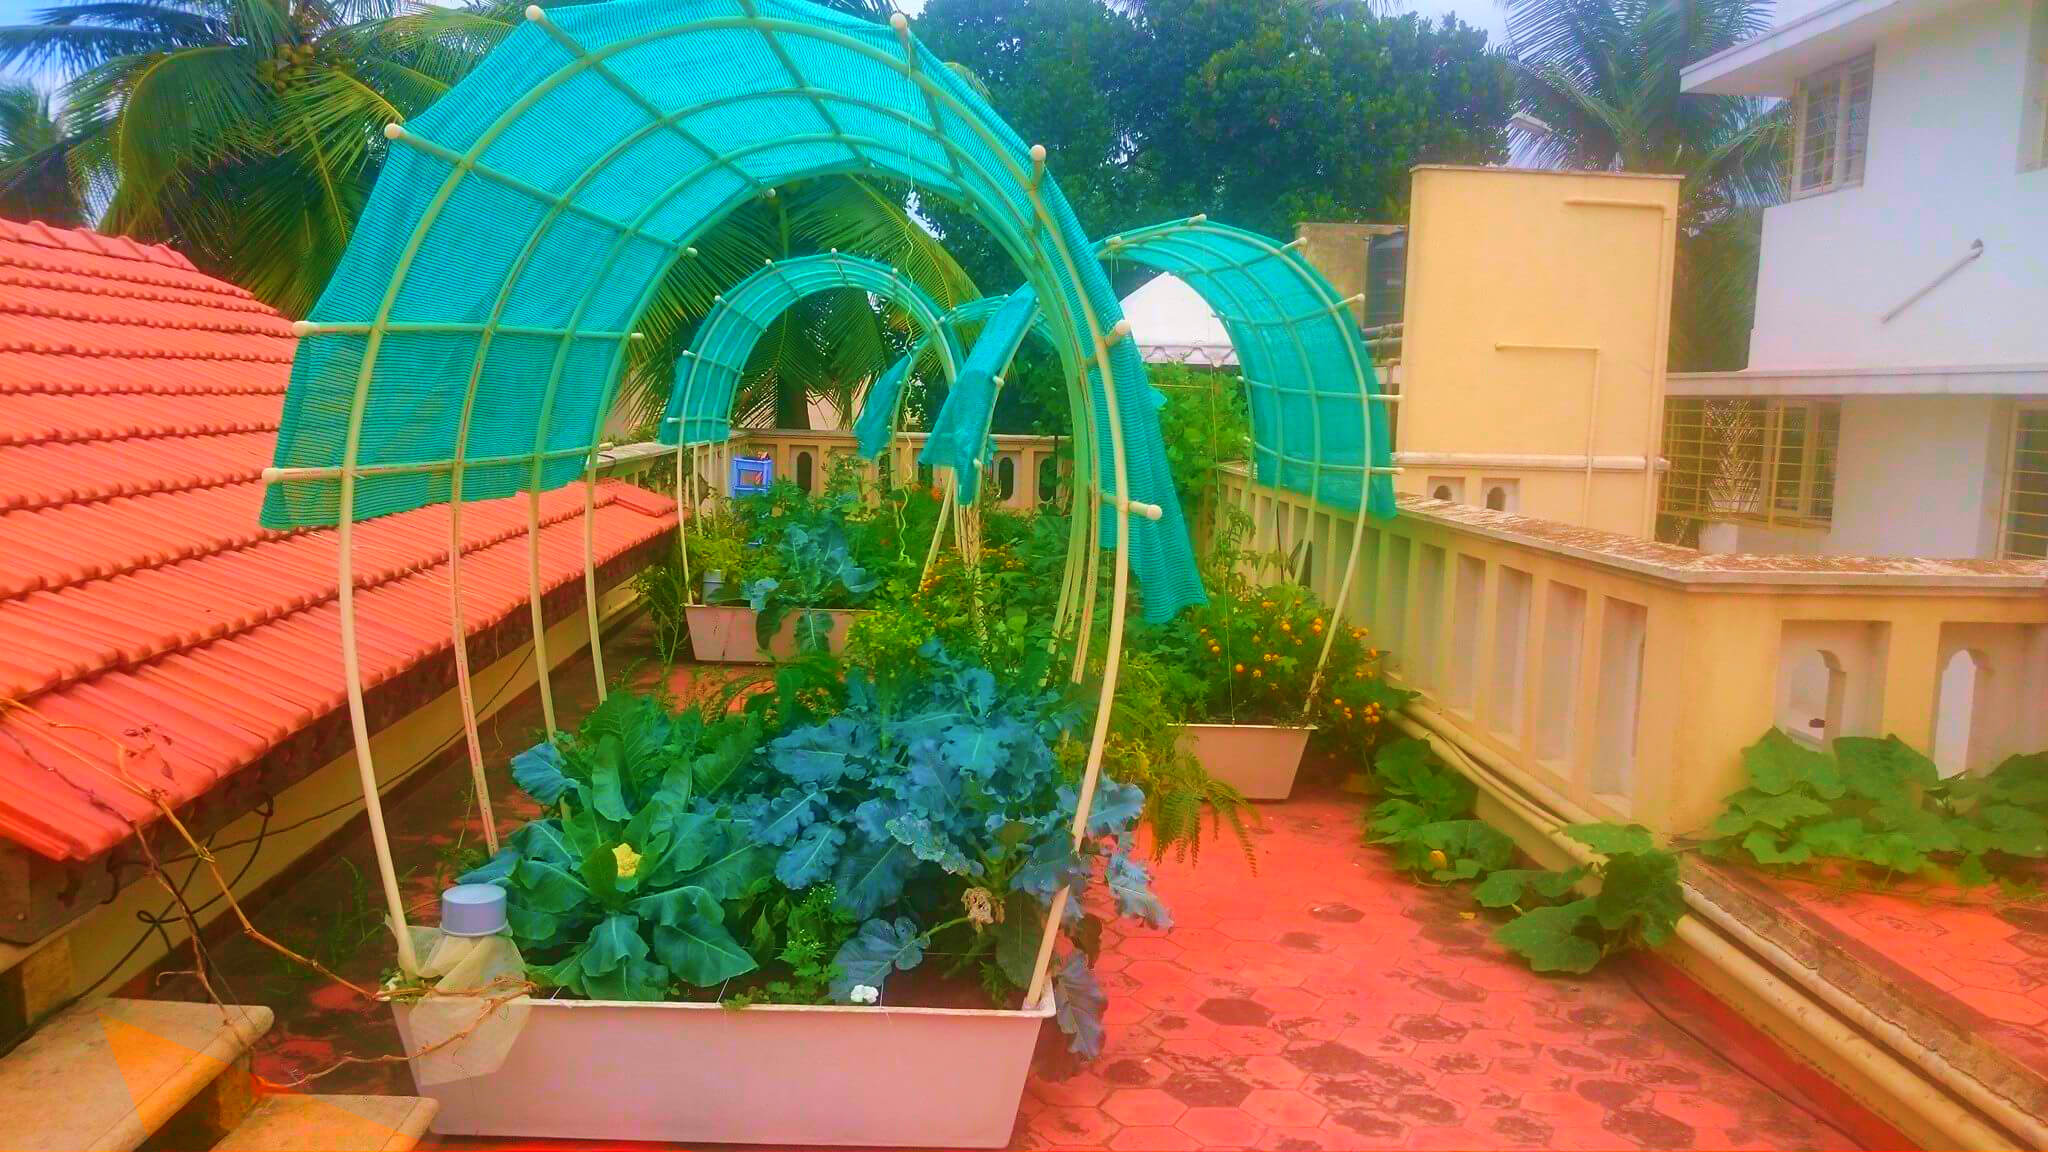 Smart gardens complete kits for organic terrace kitchen garden in india smart garden self watering organic terrace garden solutioingenieria Images